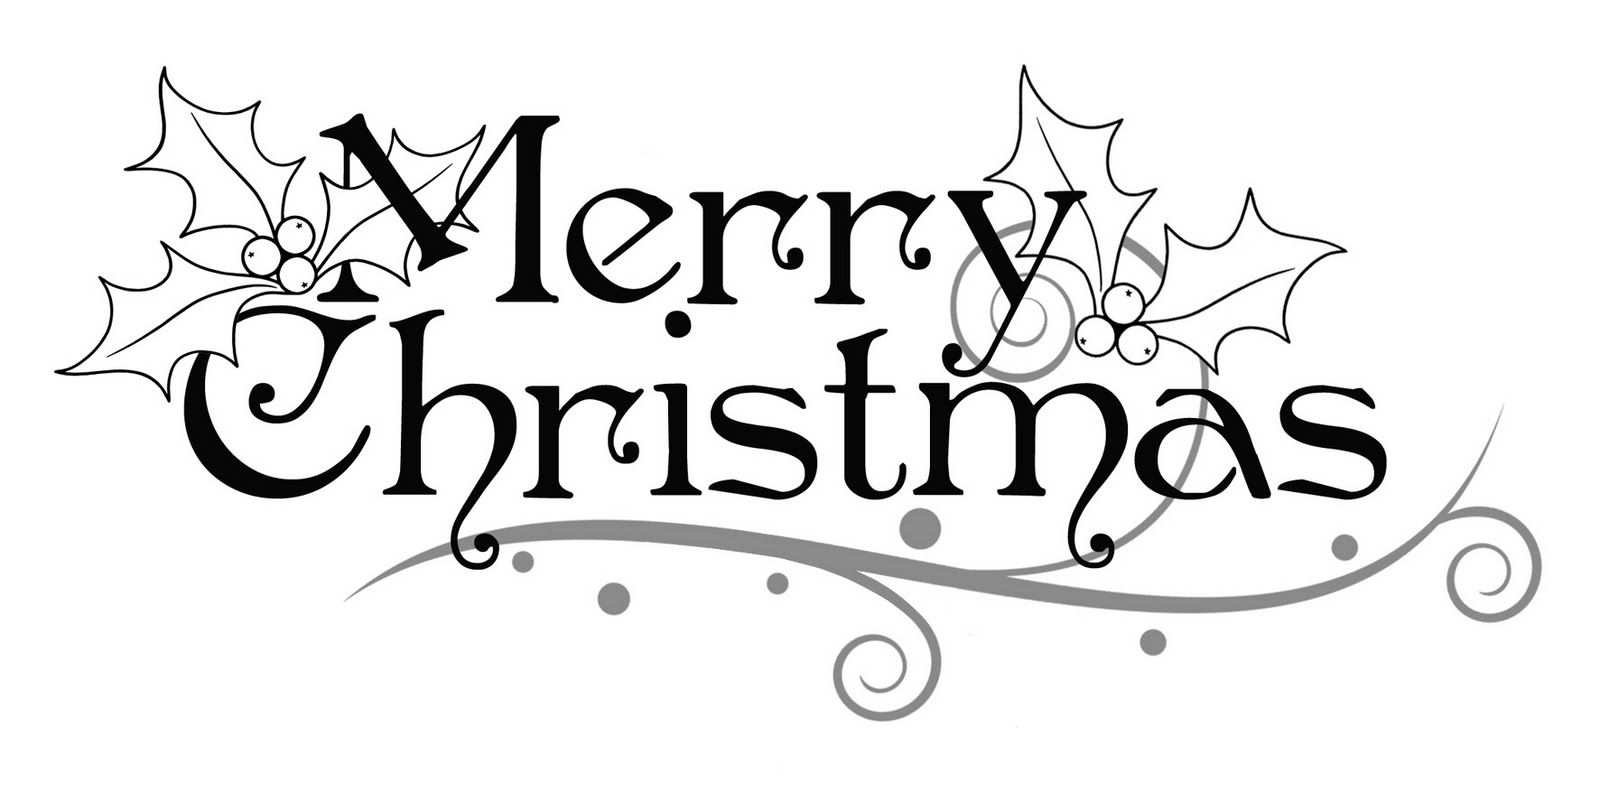 Merry Christmas Christmas Clipart Black And White.